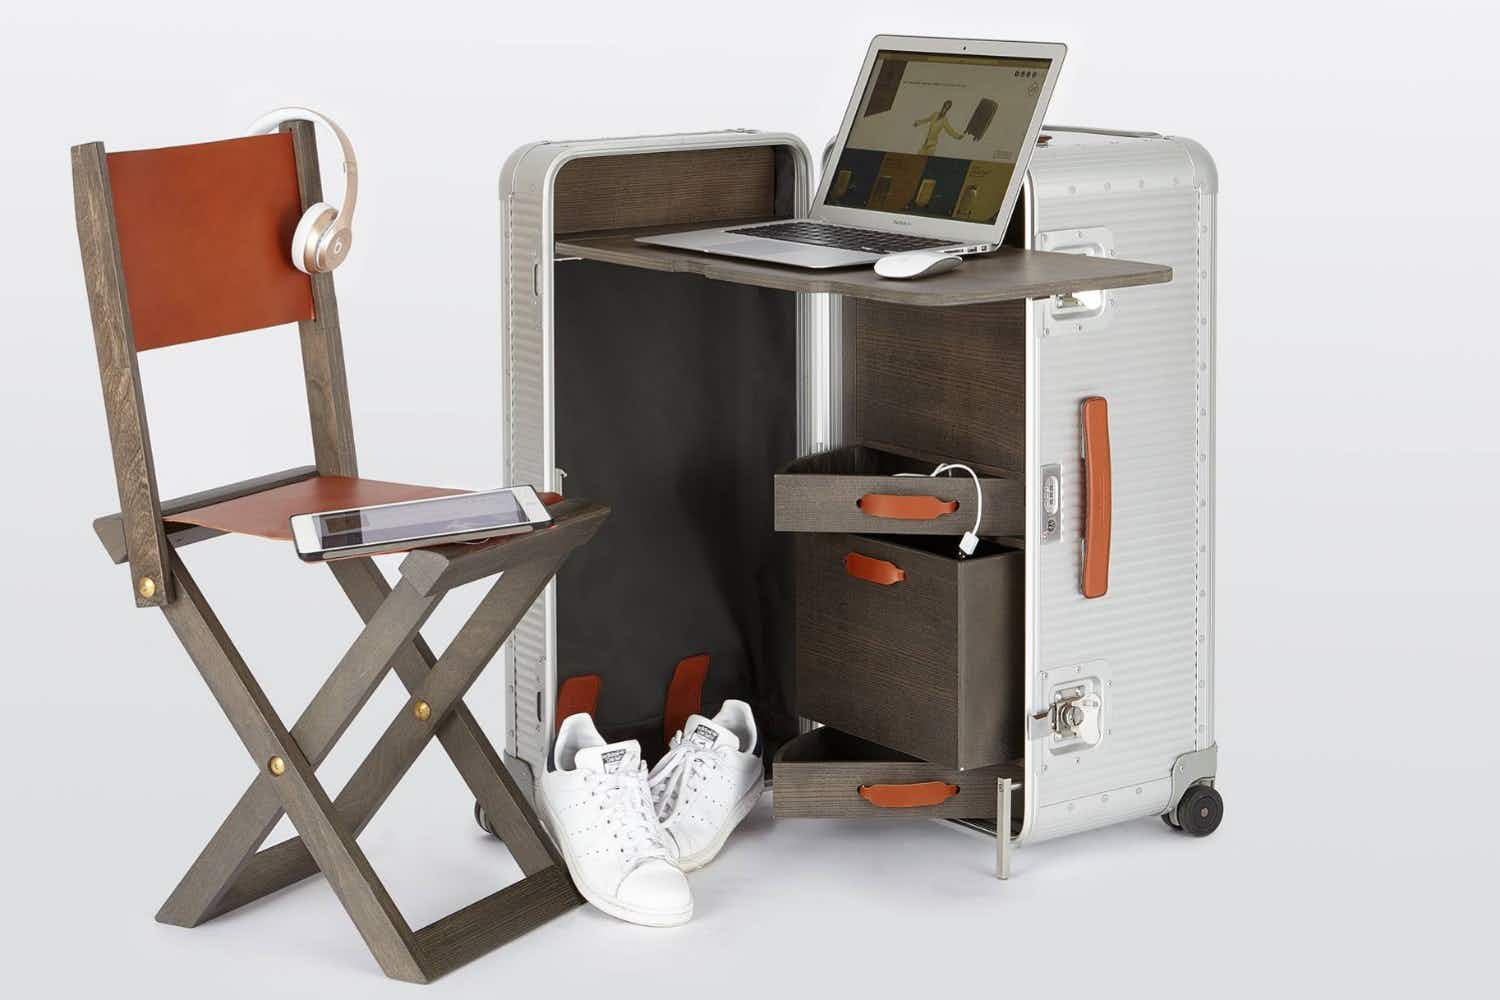 An Italian designer's luggage set contains a cooker, refrigerator, office desk, chair and bed